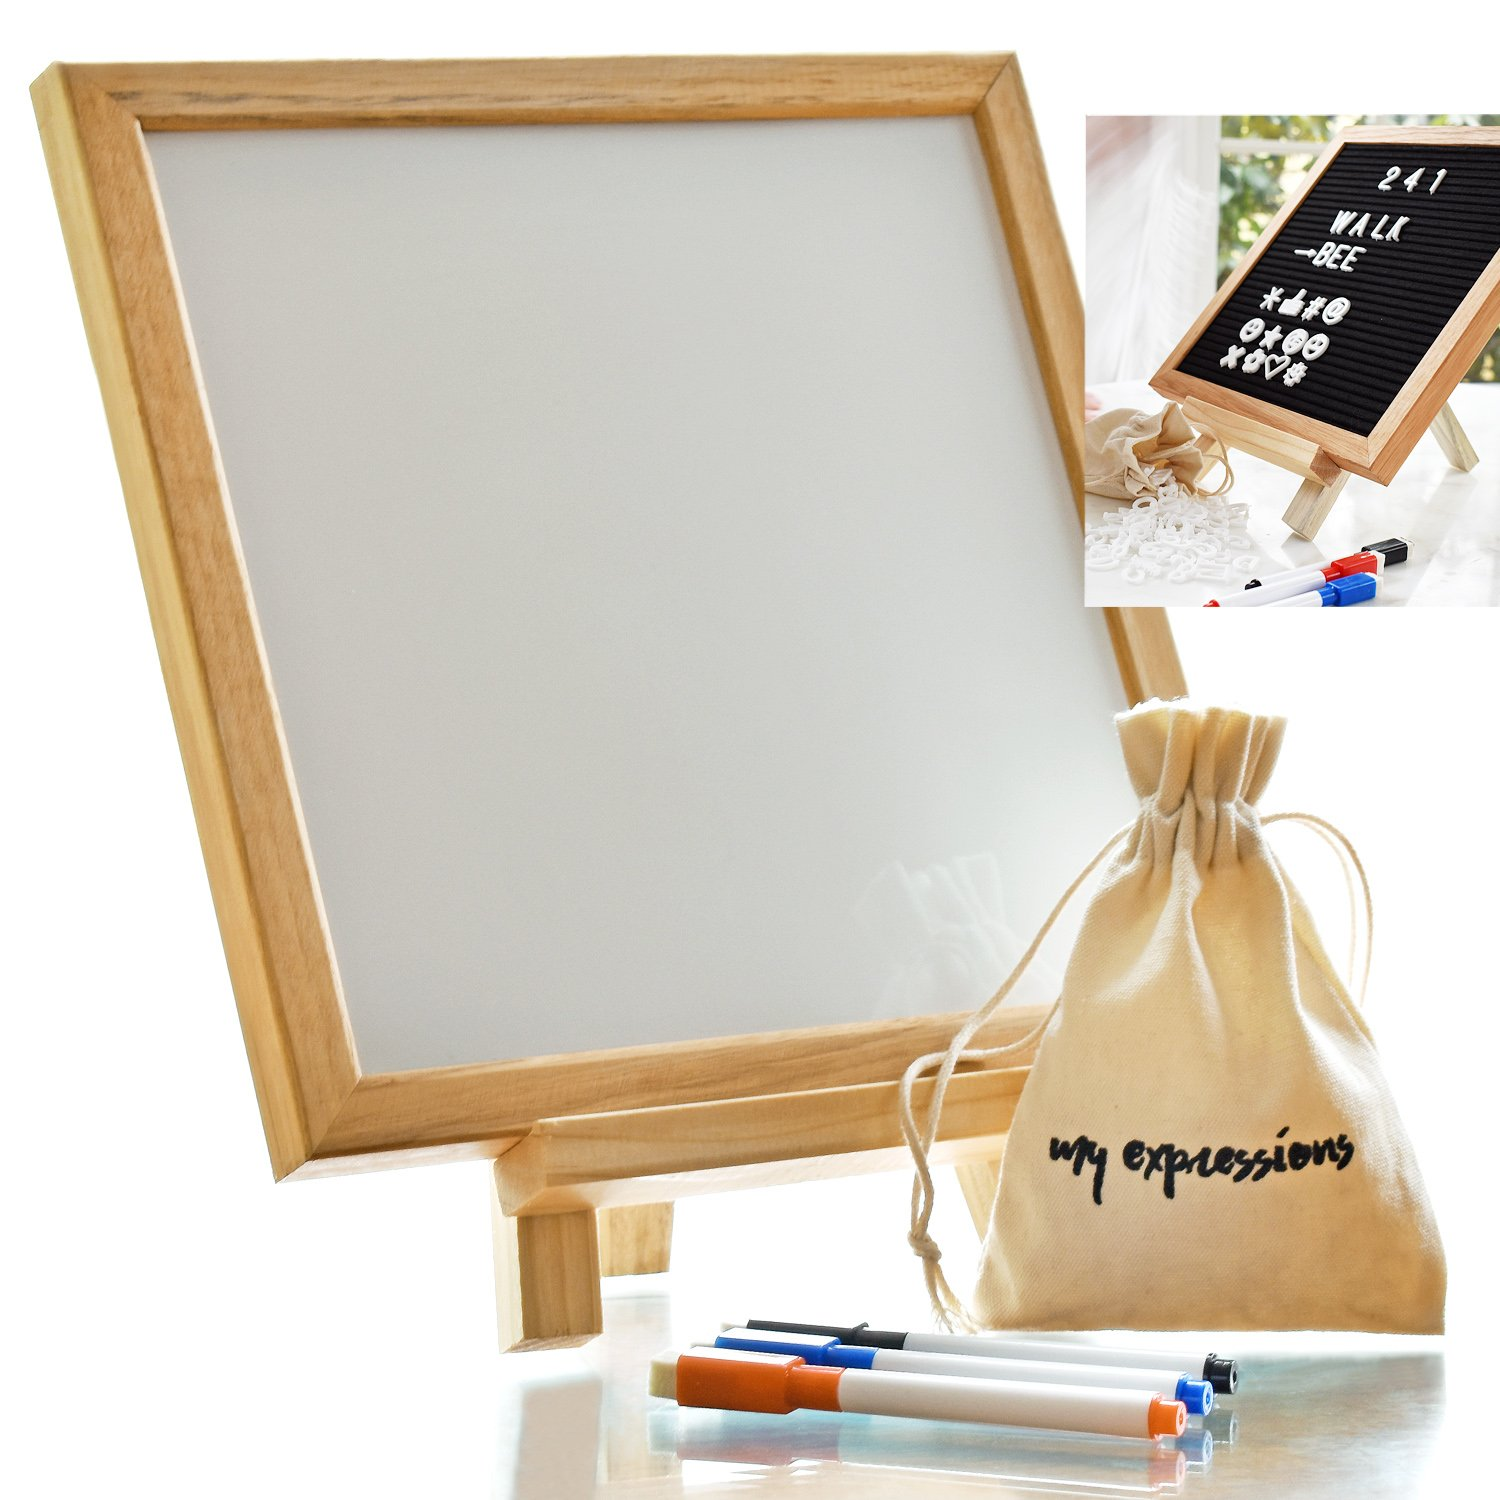 Just4You Felt Letter Board and a WhiteBoard 10x10 Inches 2in1. 340 White Plastic Letters, Oak Frame, 3 Markers with eraser tip and stand. SmartGadgets